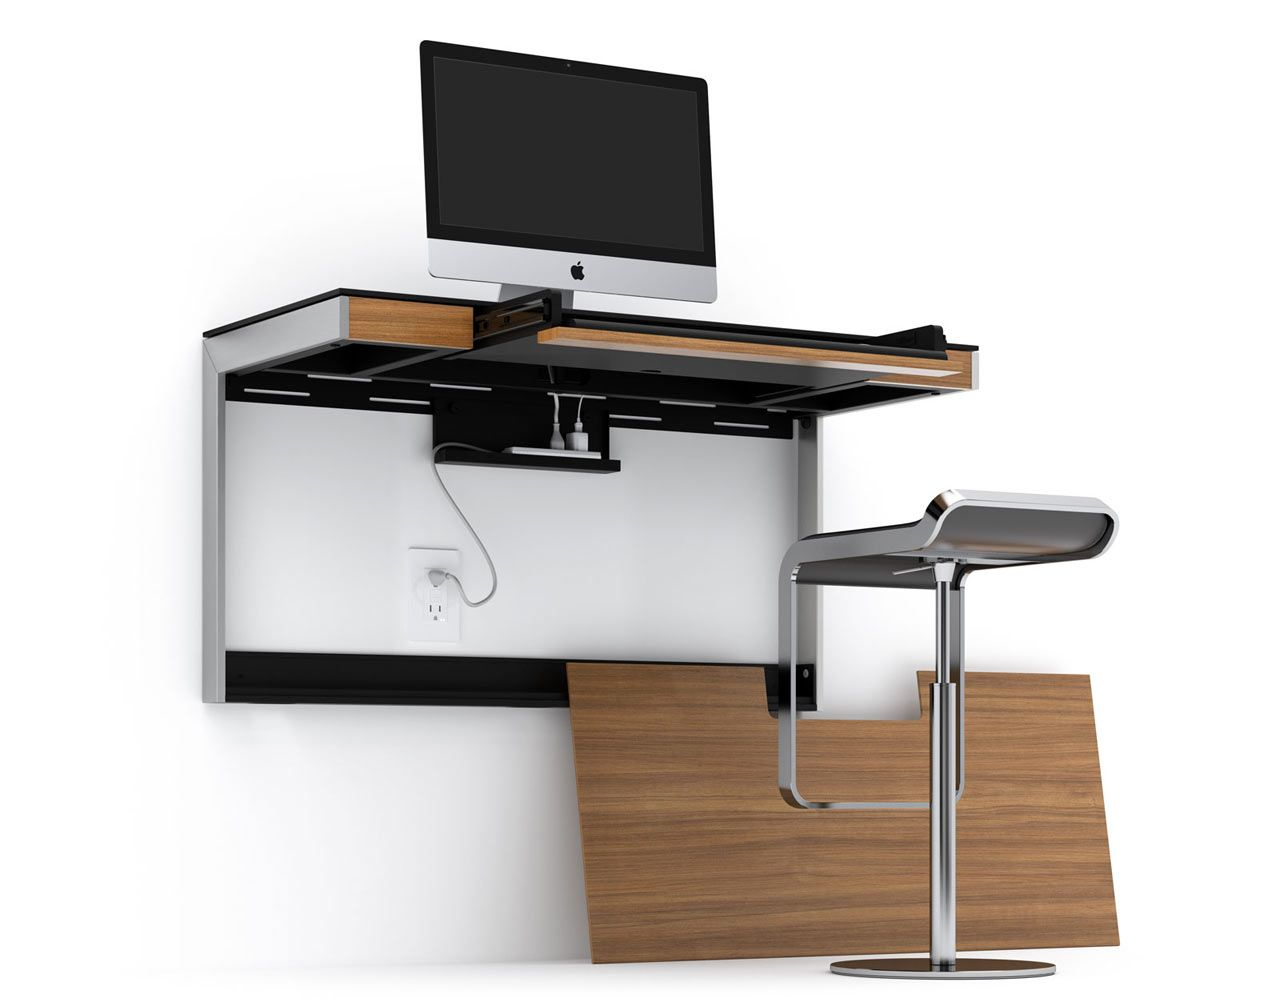 Sequel Wall Mounted Desk 6004 Matthew Weatherly 5 Design Milk Desks For Small Spaces Wall Mounted Desk Wall Desk